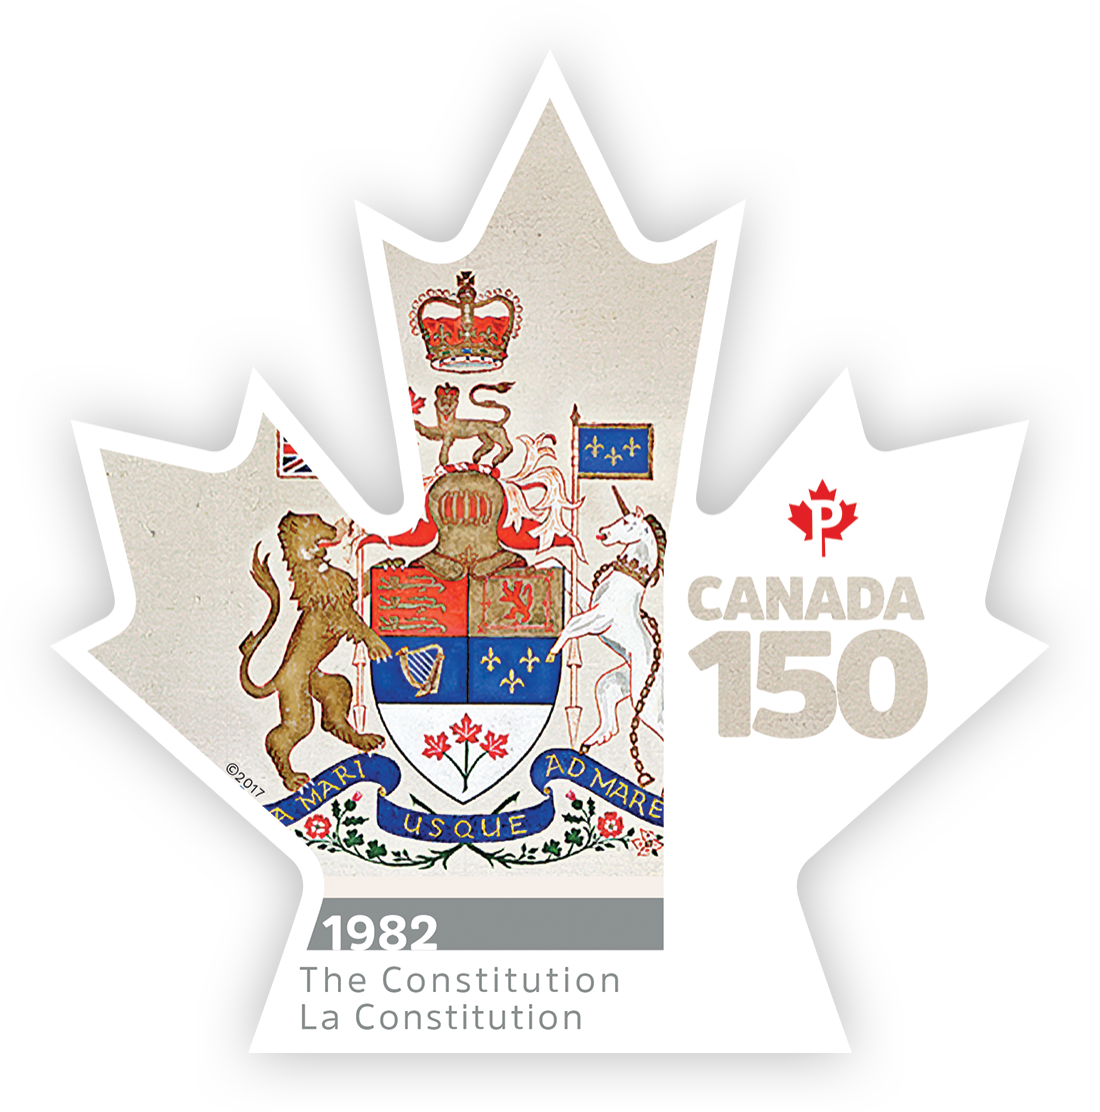 The Constitution and the Canadian Charter of Rights and Freedoms - Canada 150 Canada Postage Stamp | Canada 150